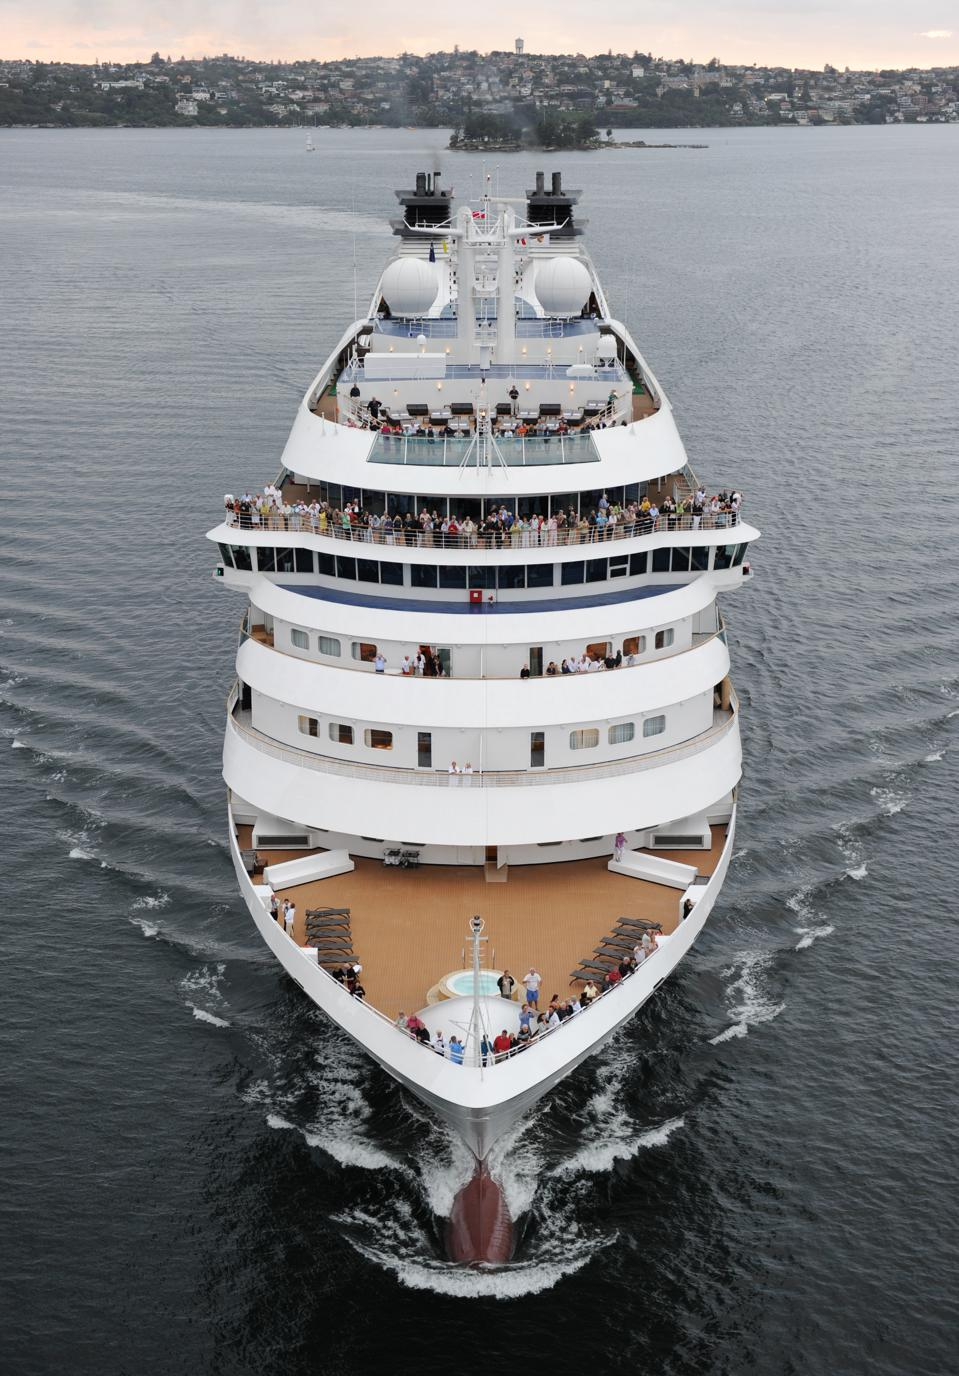 The $300 million Seabourn Odyssey, arriving in Sydney Harbour